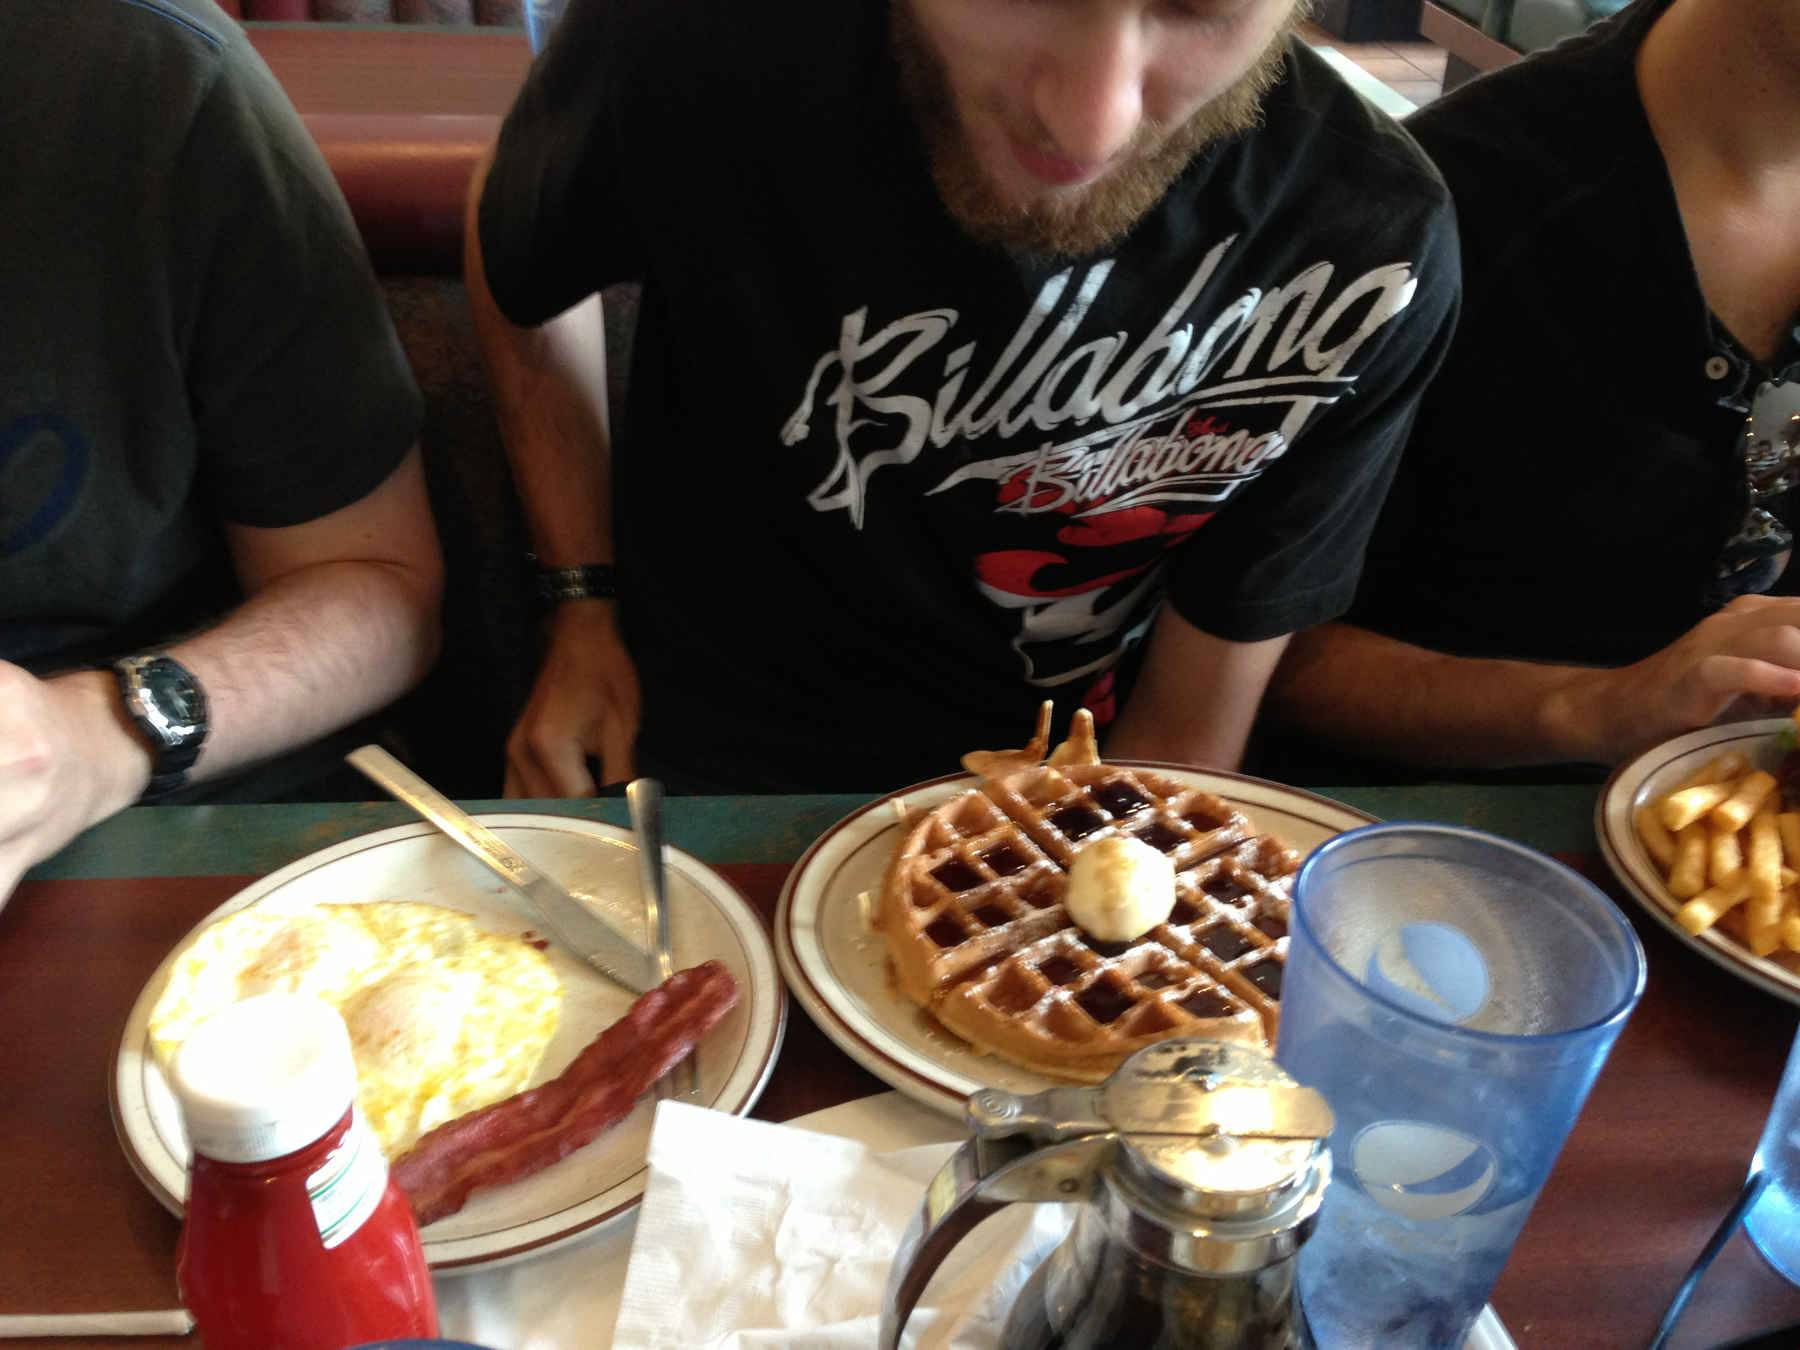 Irwin about to tuck into some excellent looking waffles